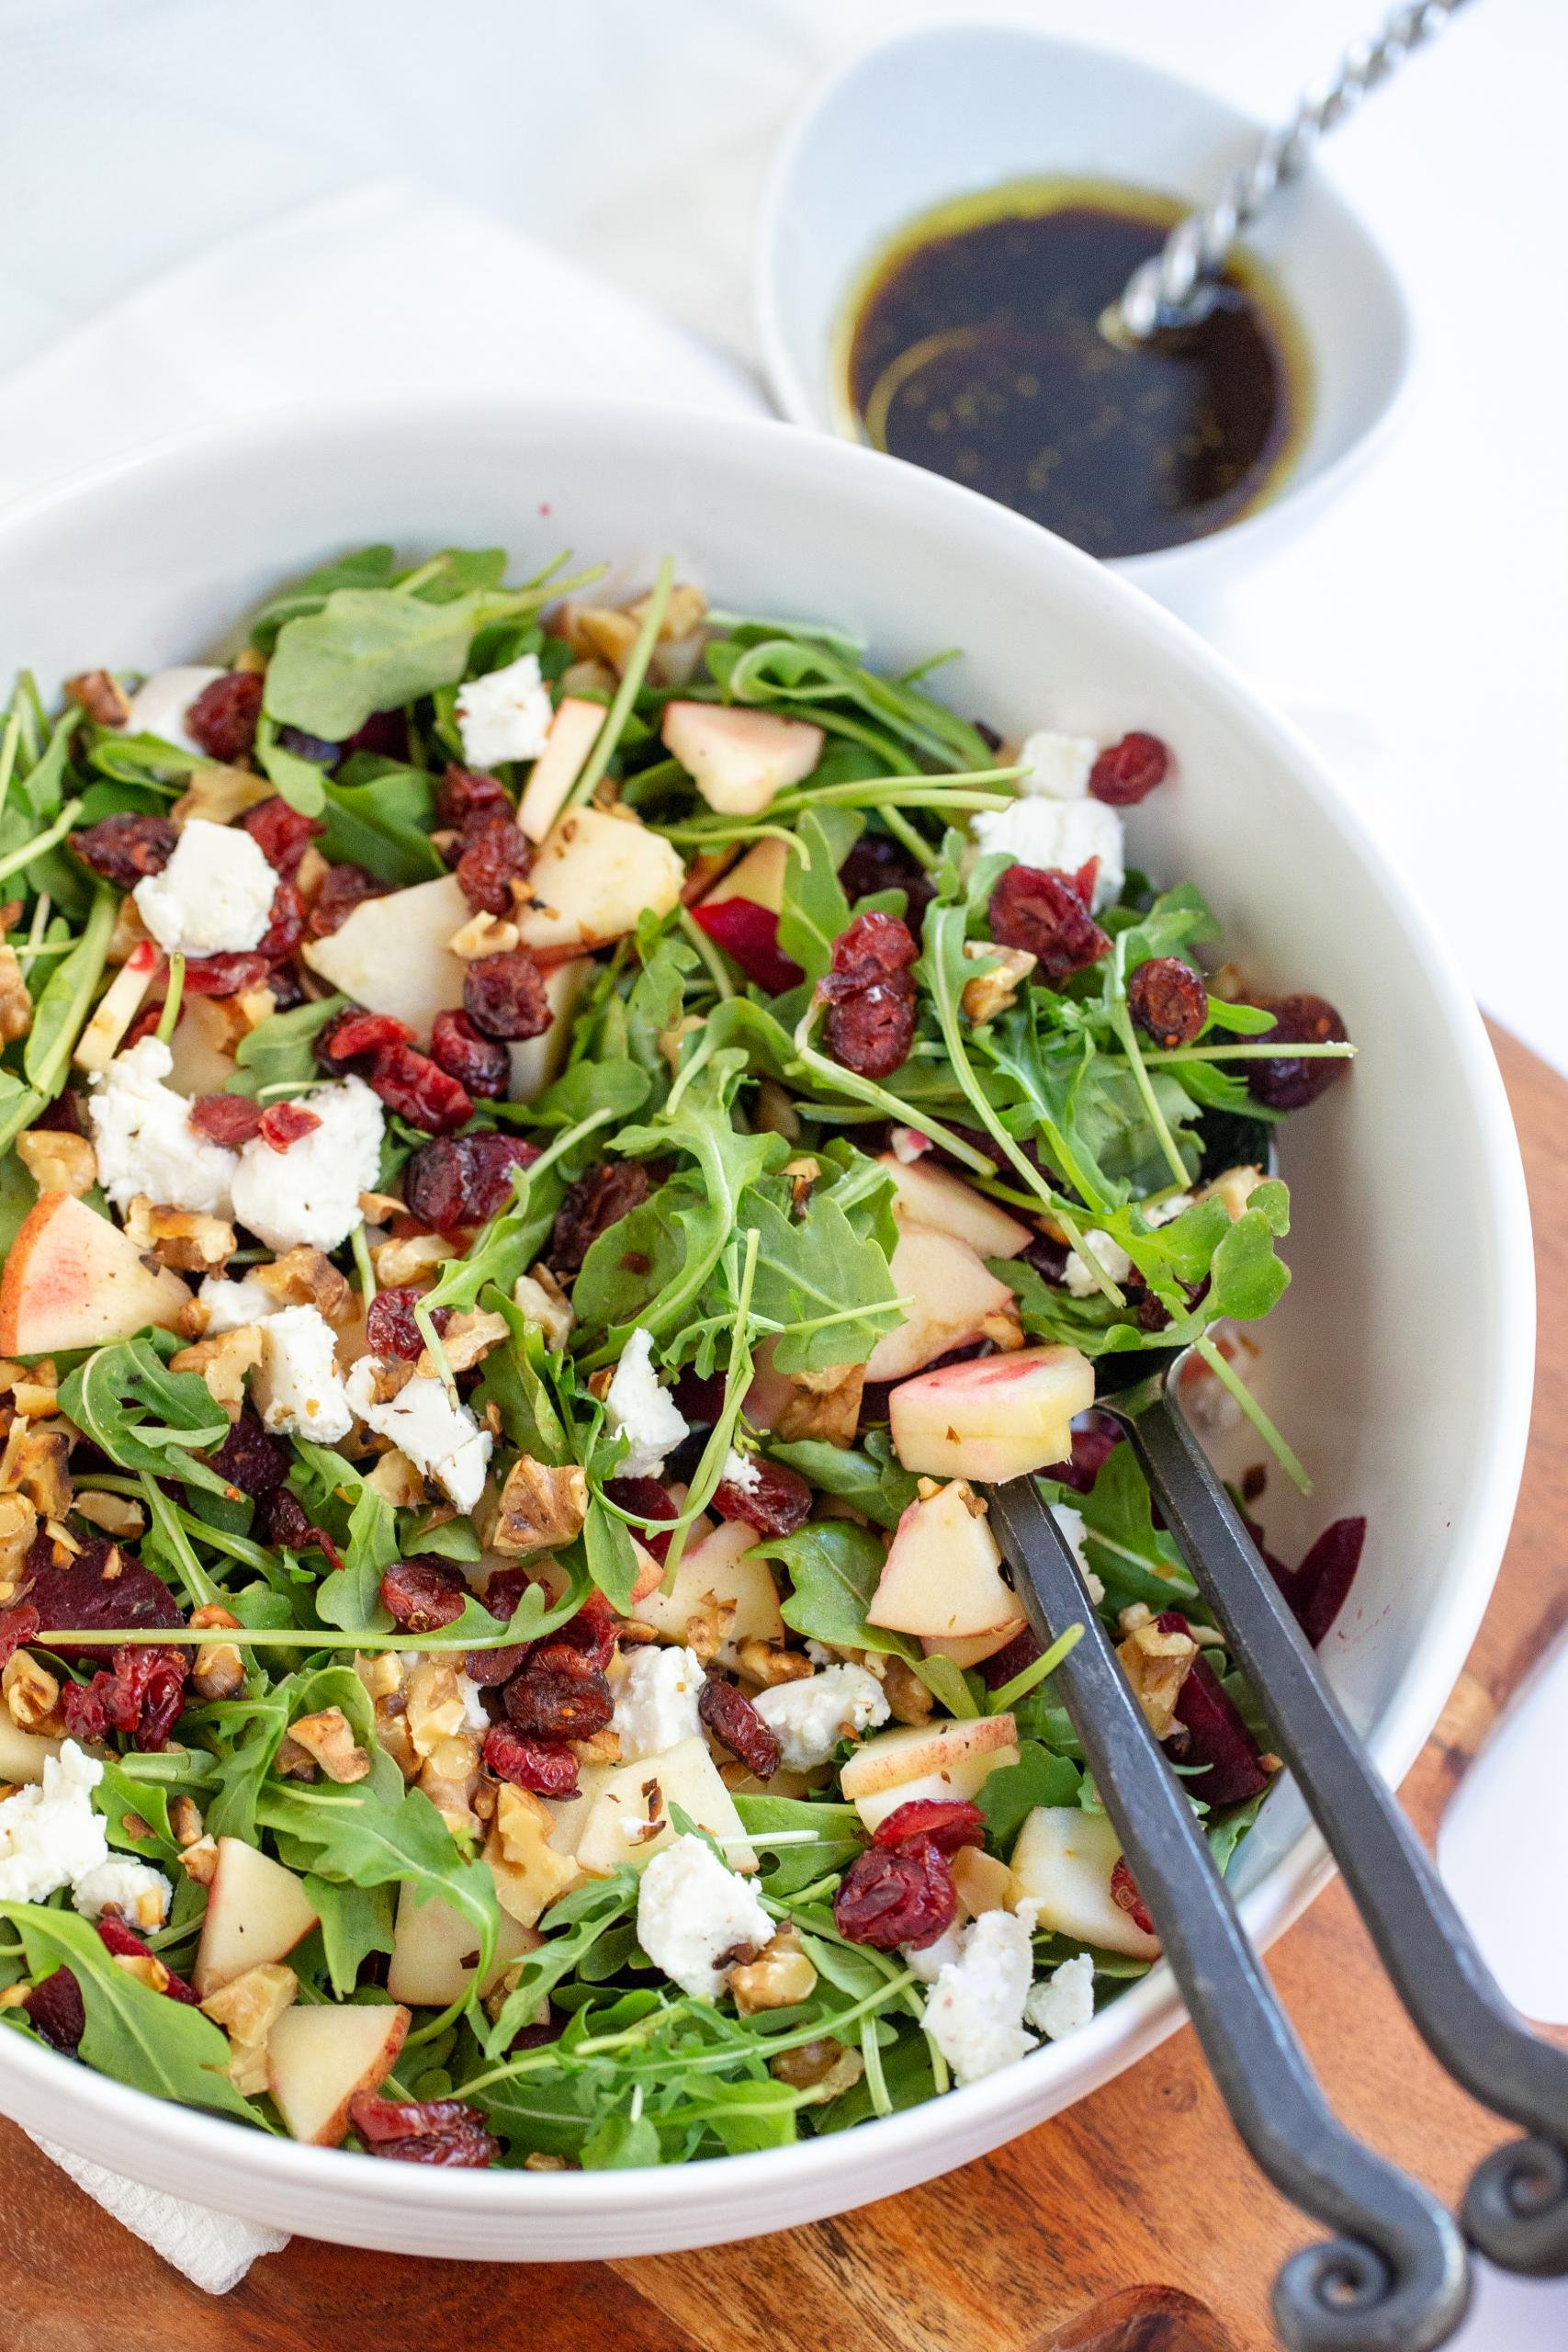 Beet and Goat Cheese Arugula Salad in a large bowl